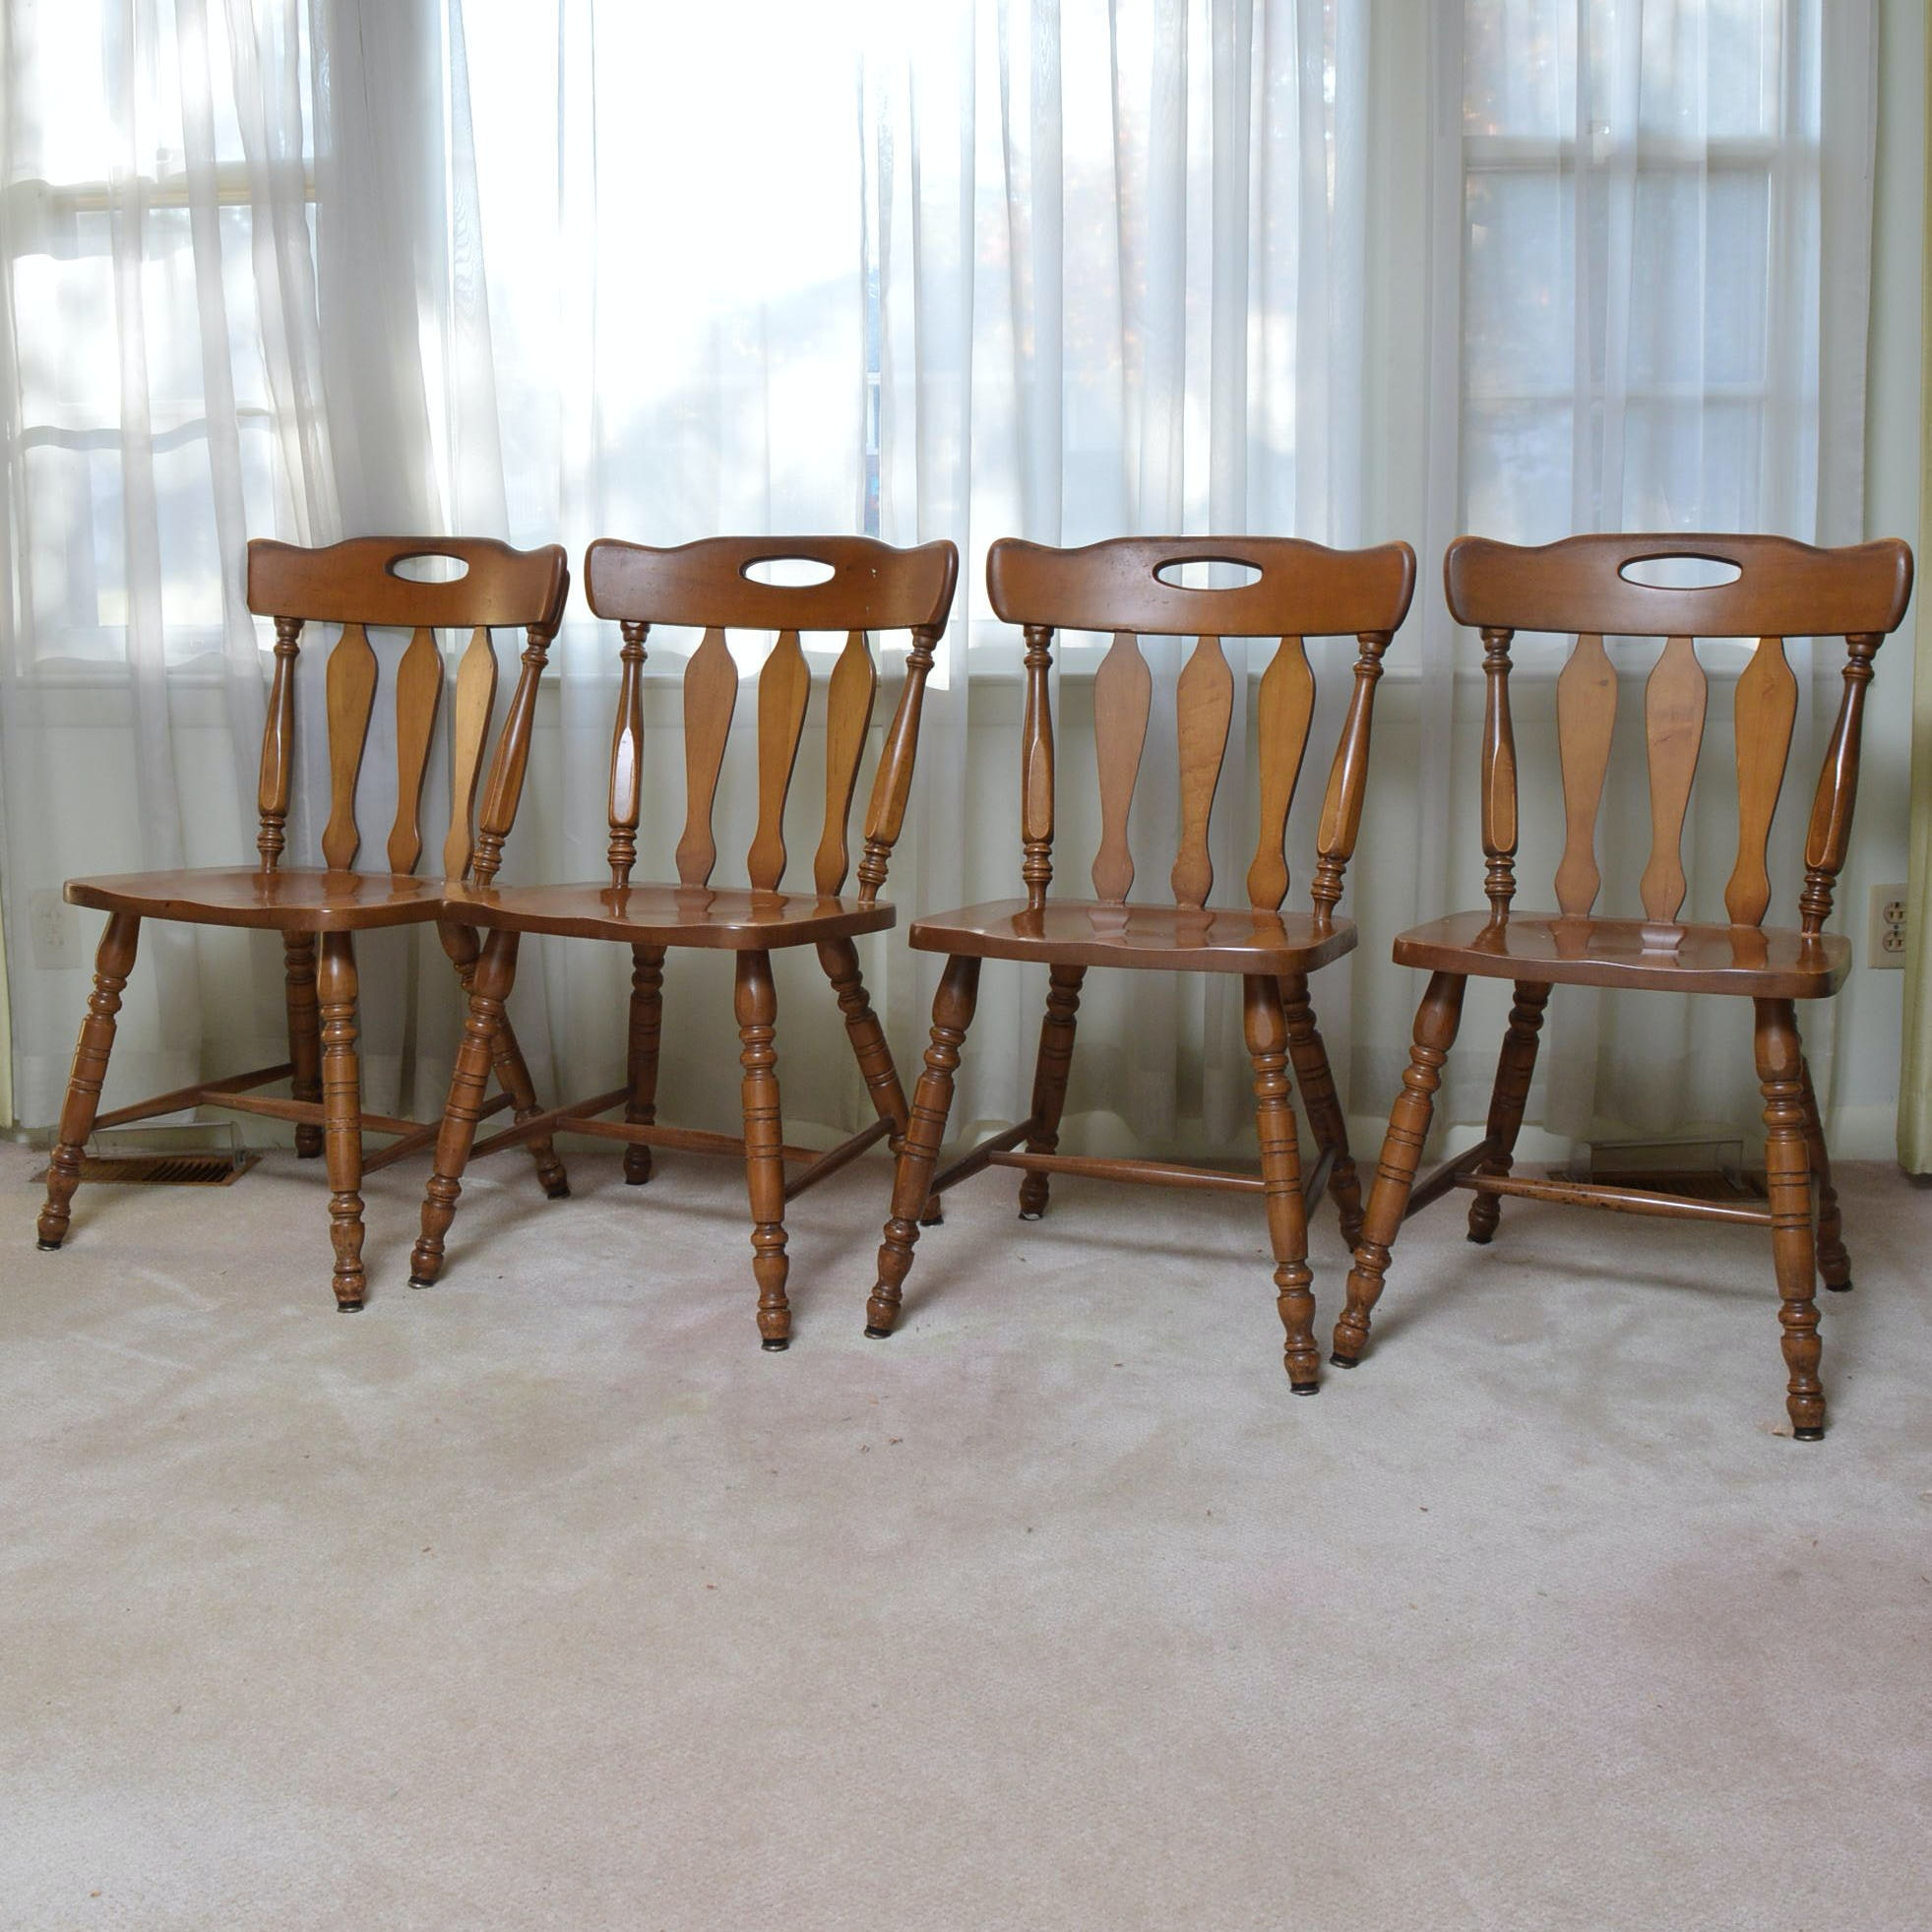 Maple Kitchen Table With Chair And Bench Ebth: Antique St. John's Table Company Maple Chairs : EBTH